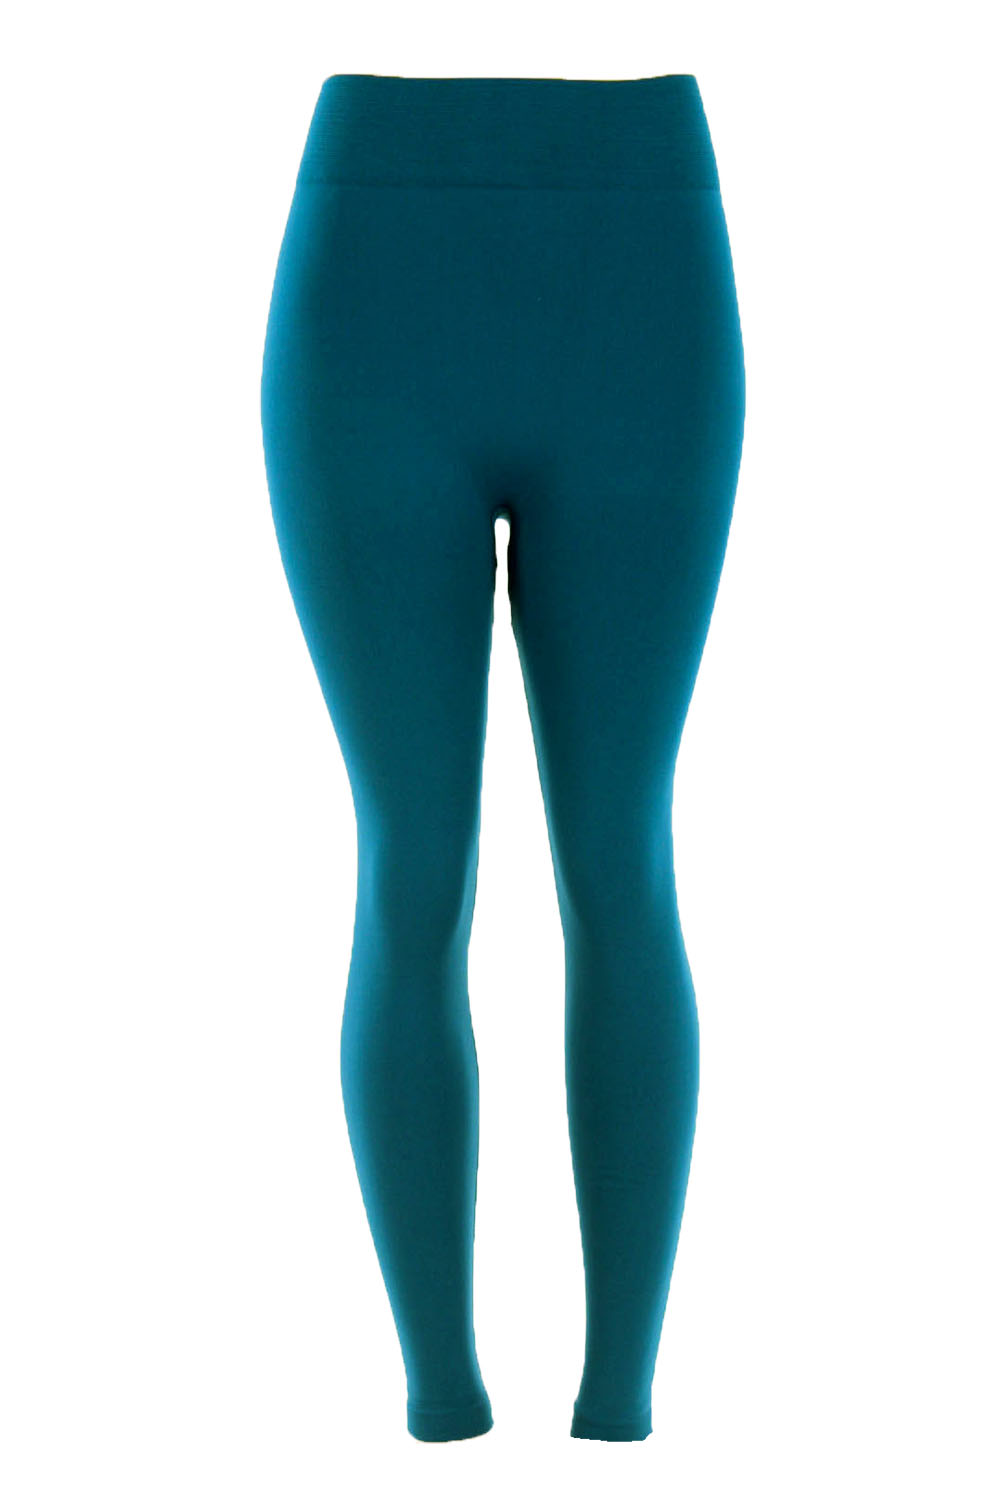 Docele Women's Regular & Plus Size Fleece Lined Leggings